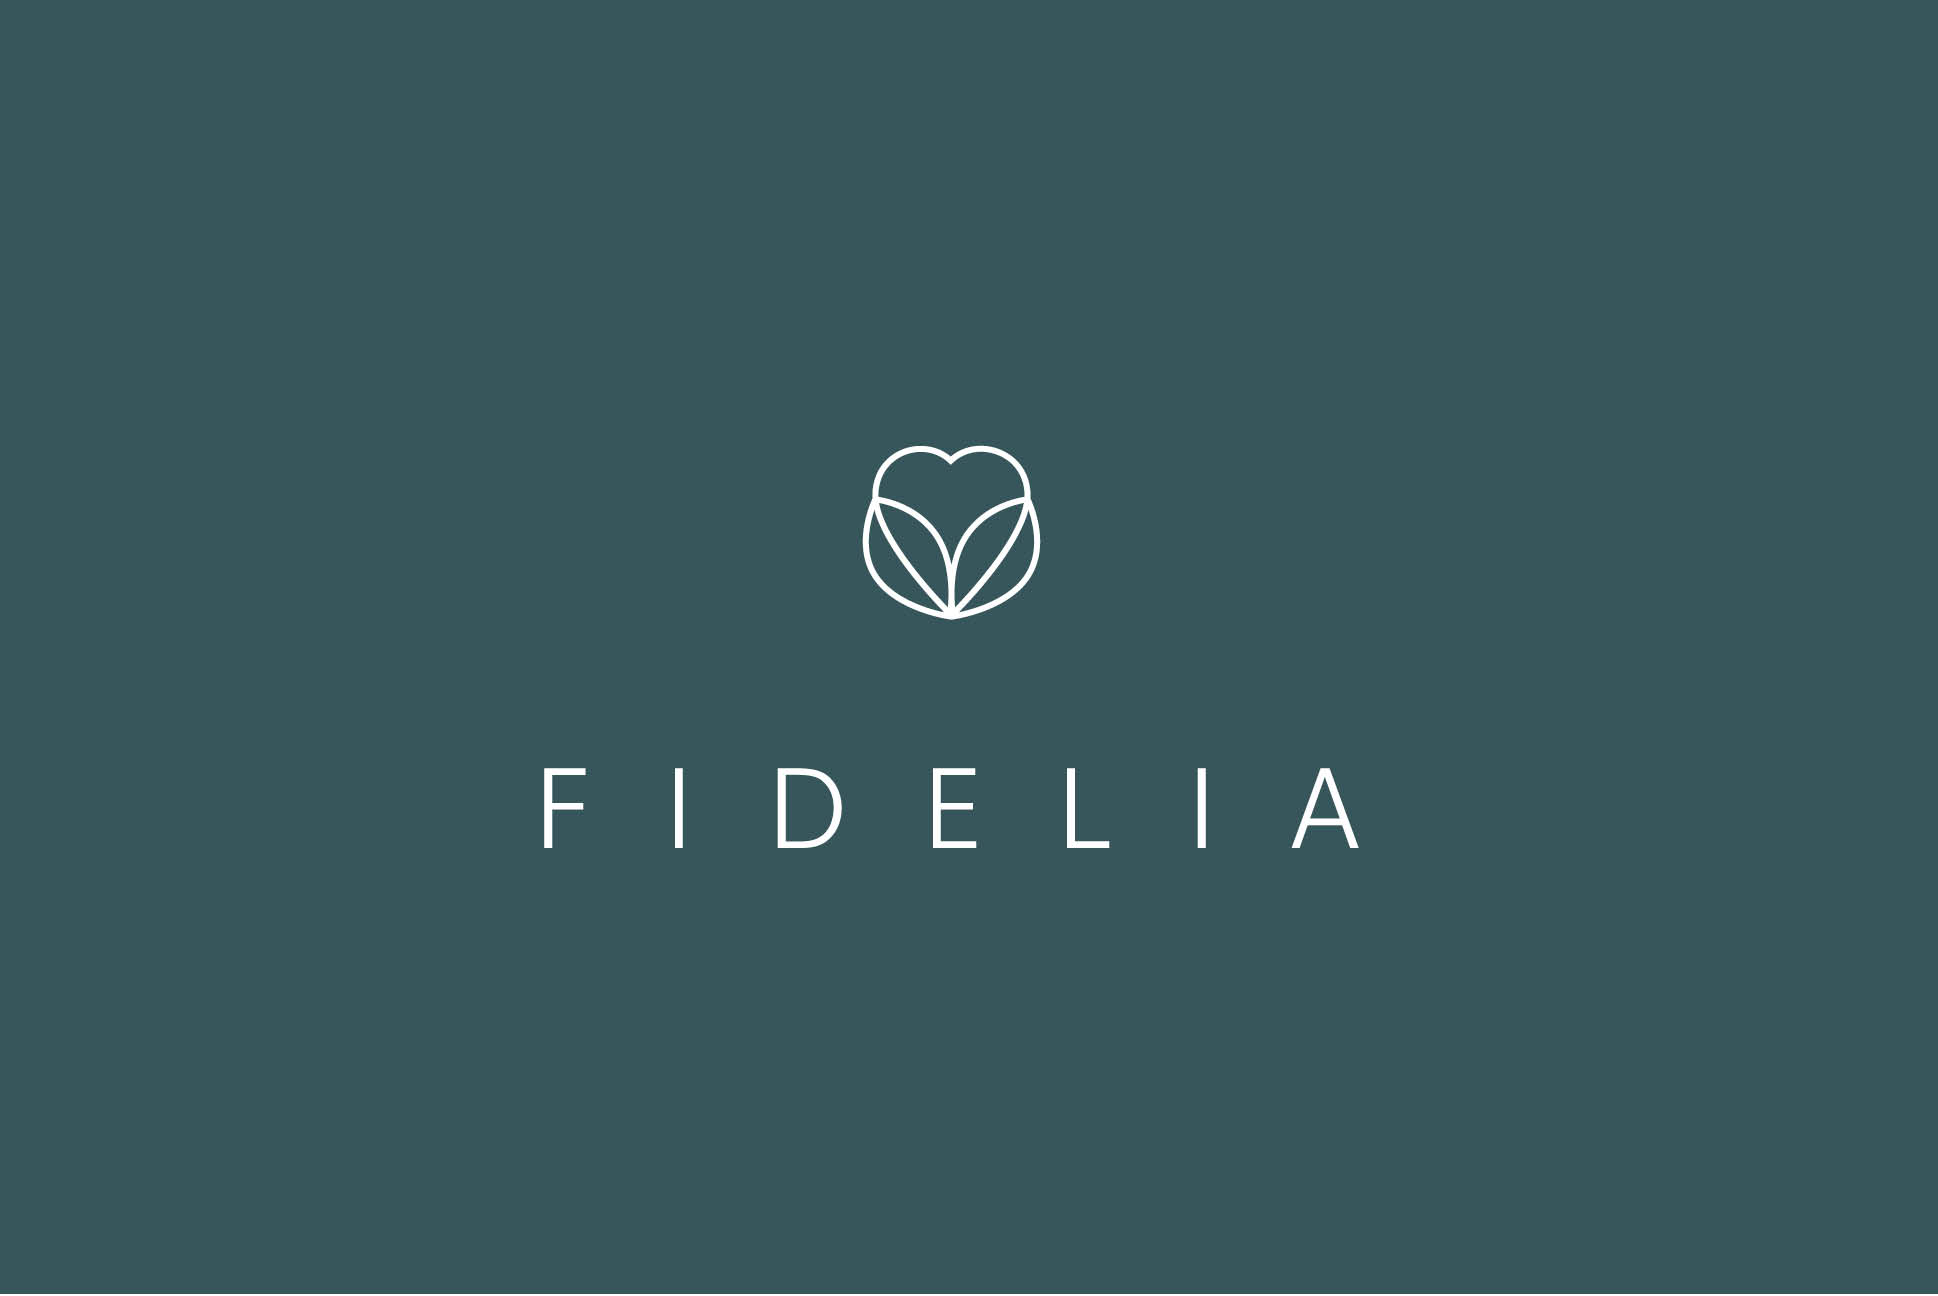 Fidelia logo | IM London | Independent Marketing London | Healthcare Branding London